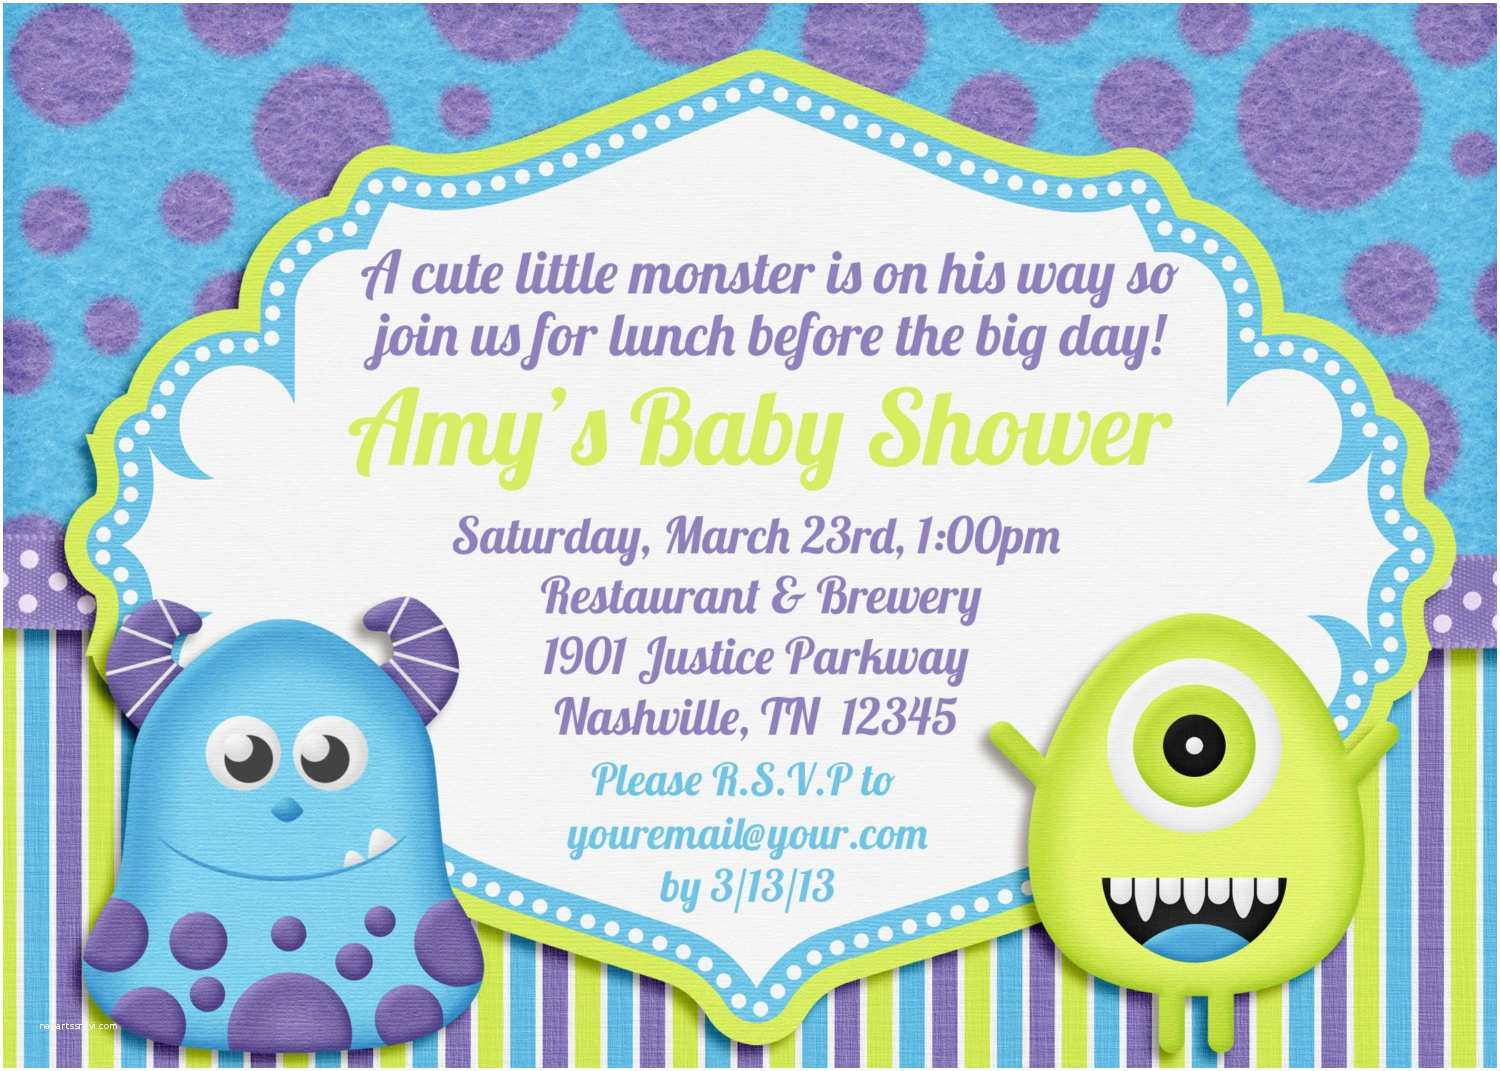 Monsters Inc Baby Shower Invitations Little Monster Baby Shower Invitation by Amandacreation On